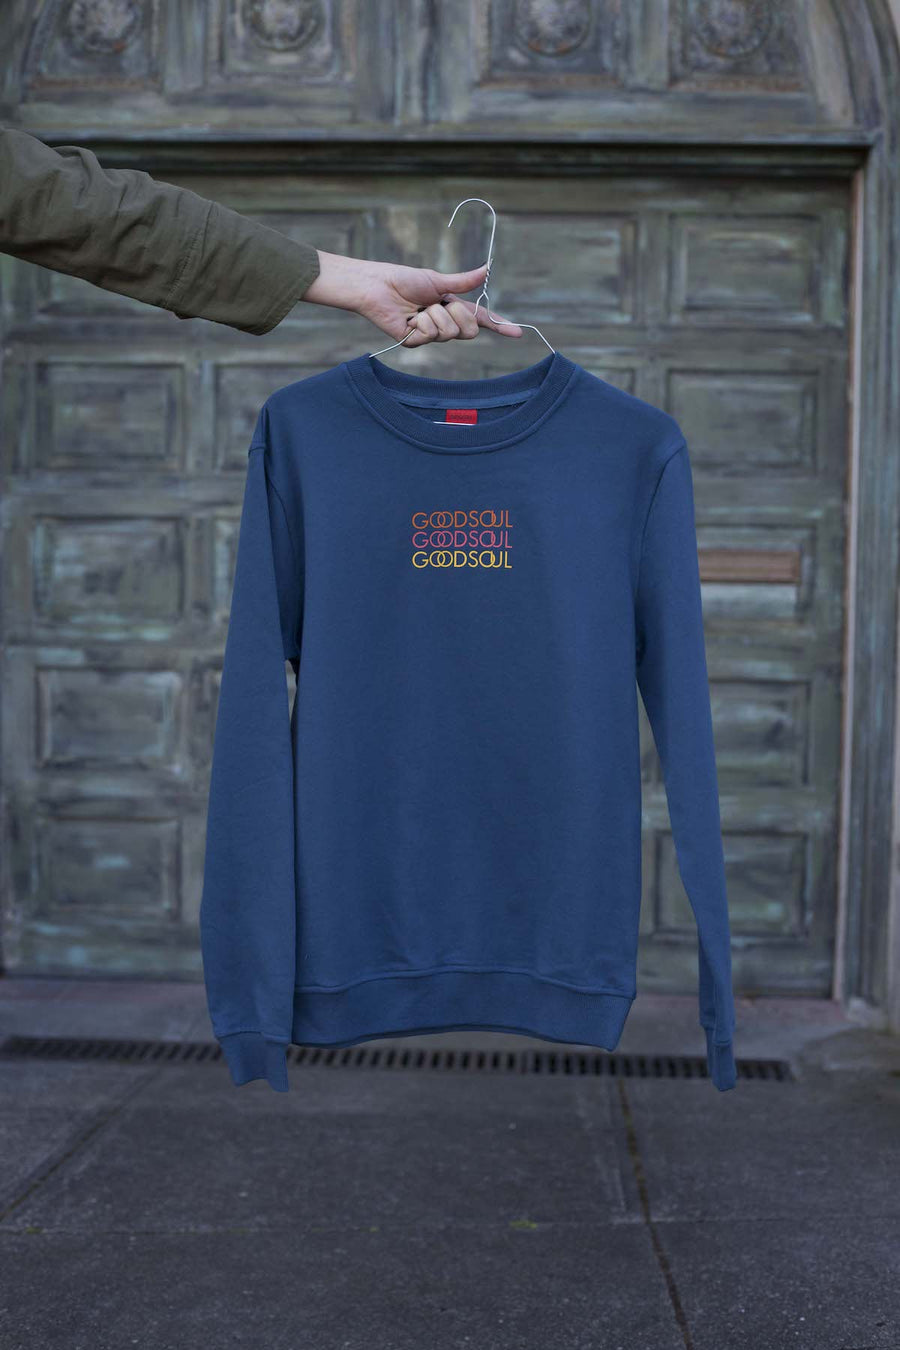 Waves of GOODSOUL Blue Sweatshirt